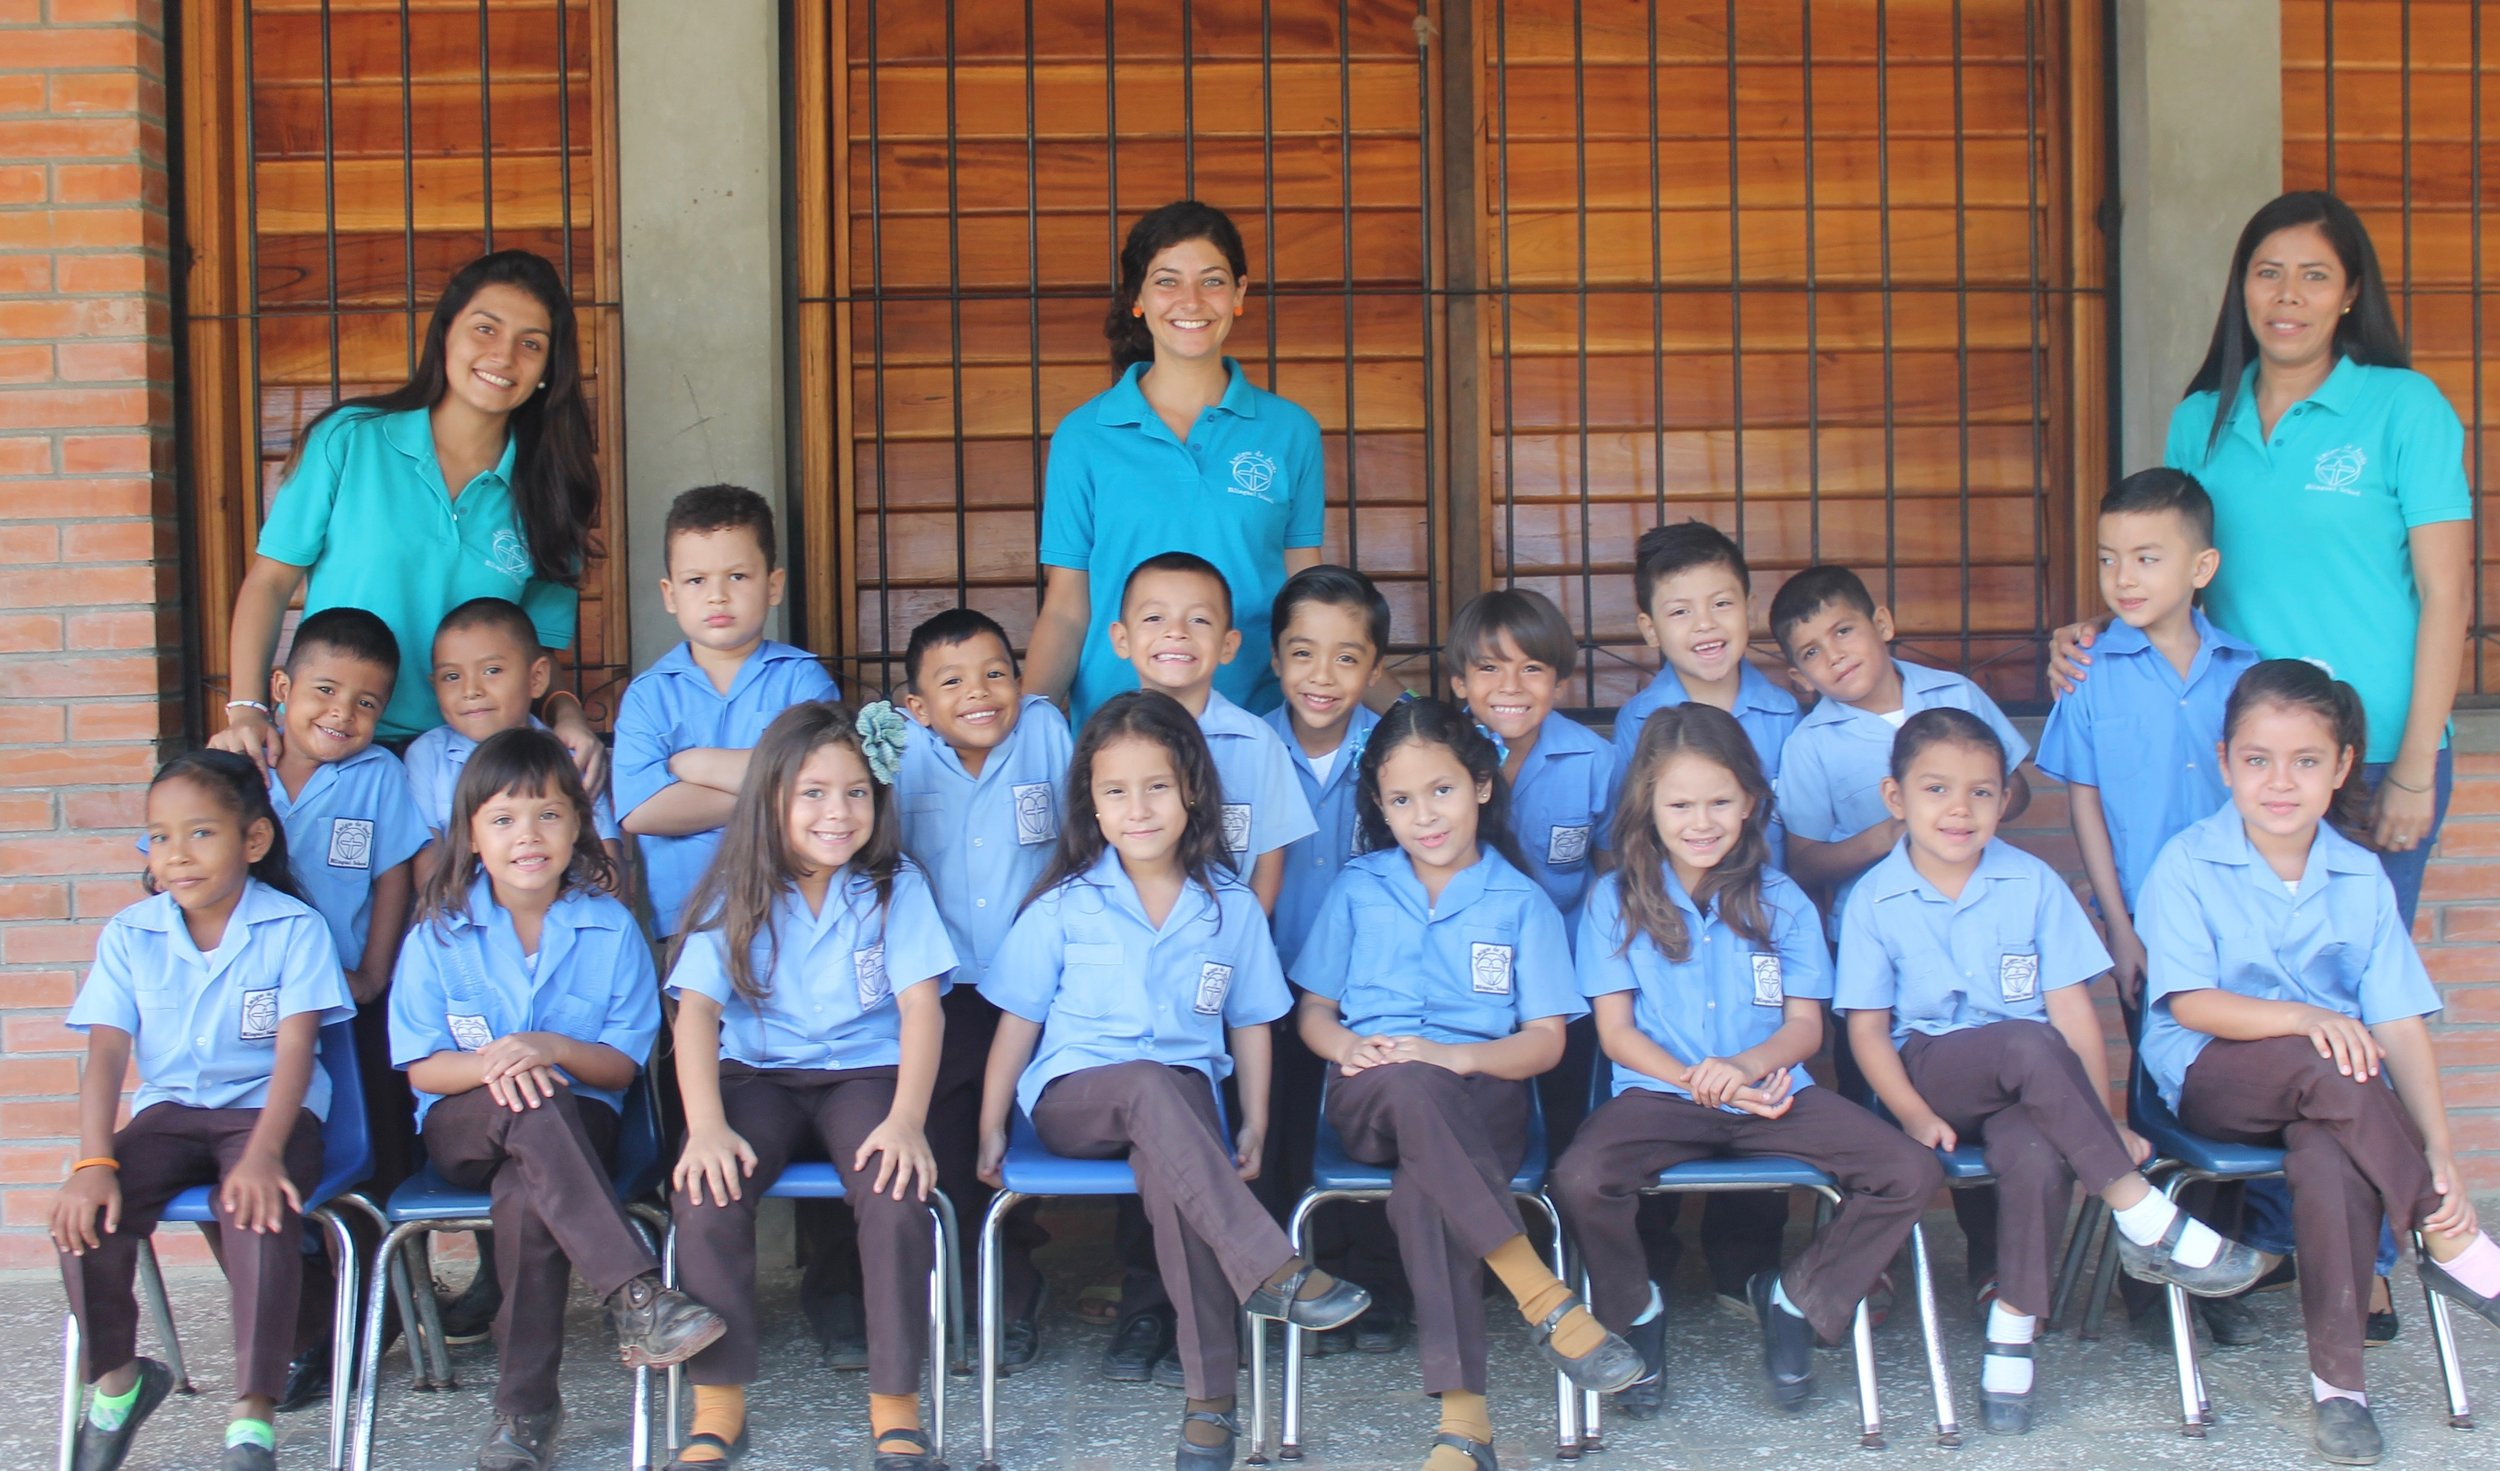 Miss Christina (standing in middle)with her'Prepa' (Kindergarten) class during the 2015-2016 school year.